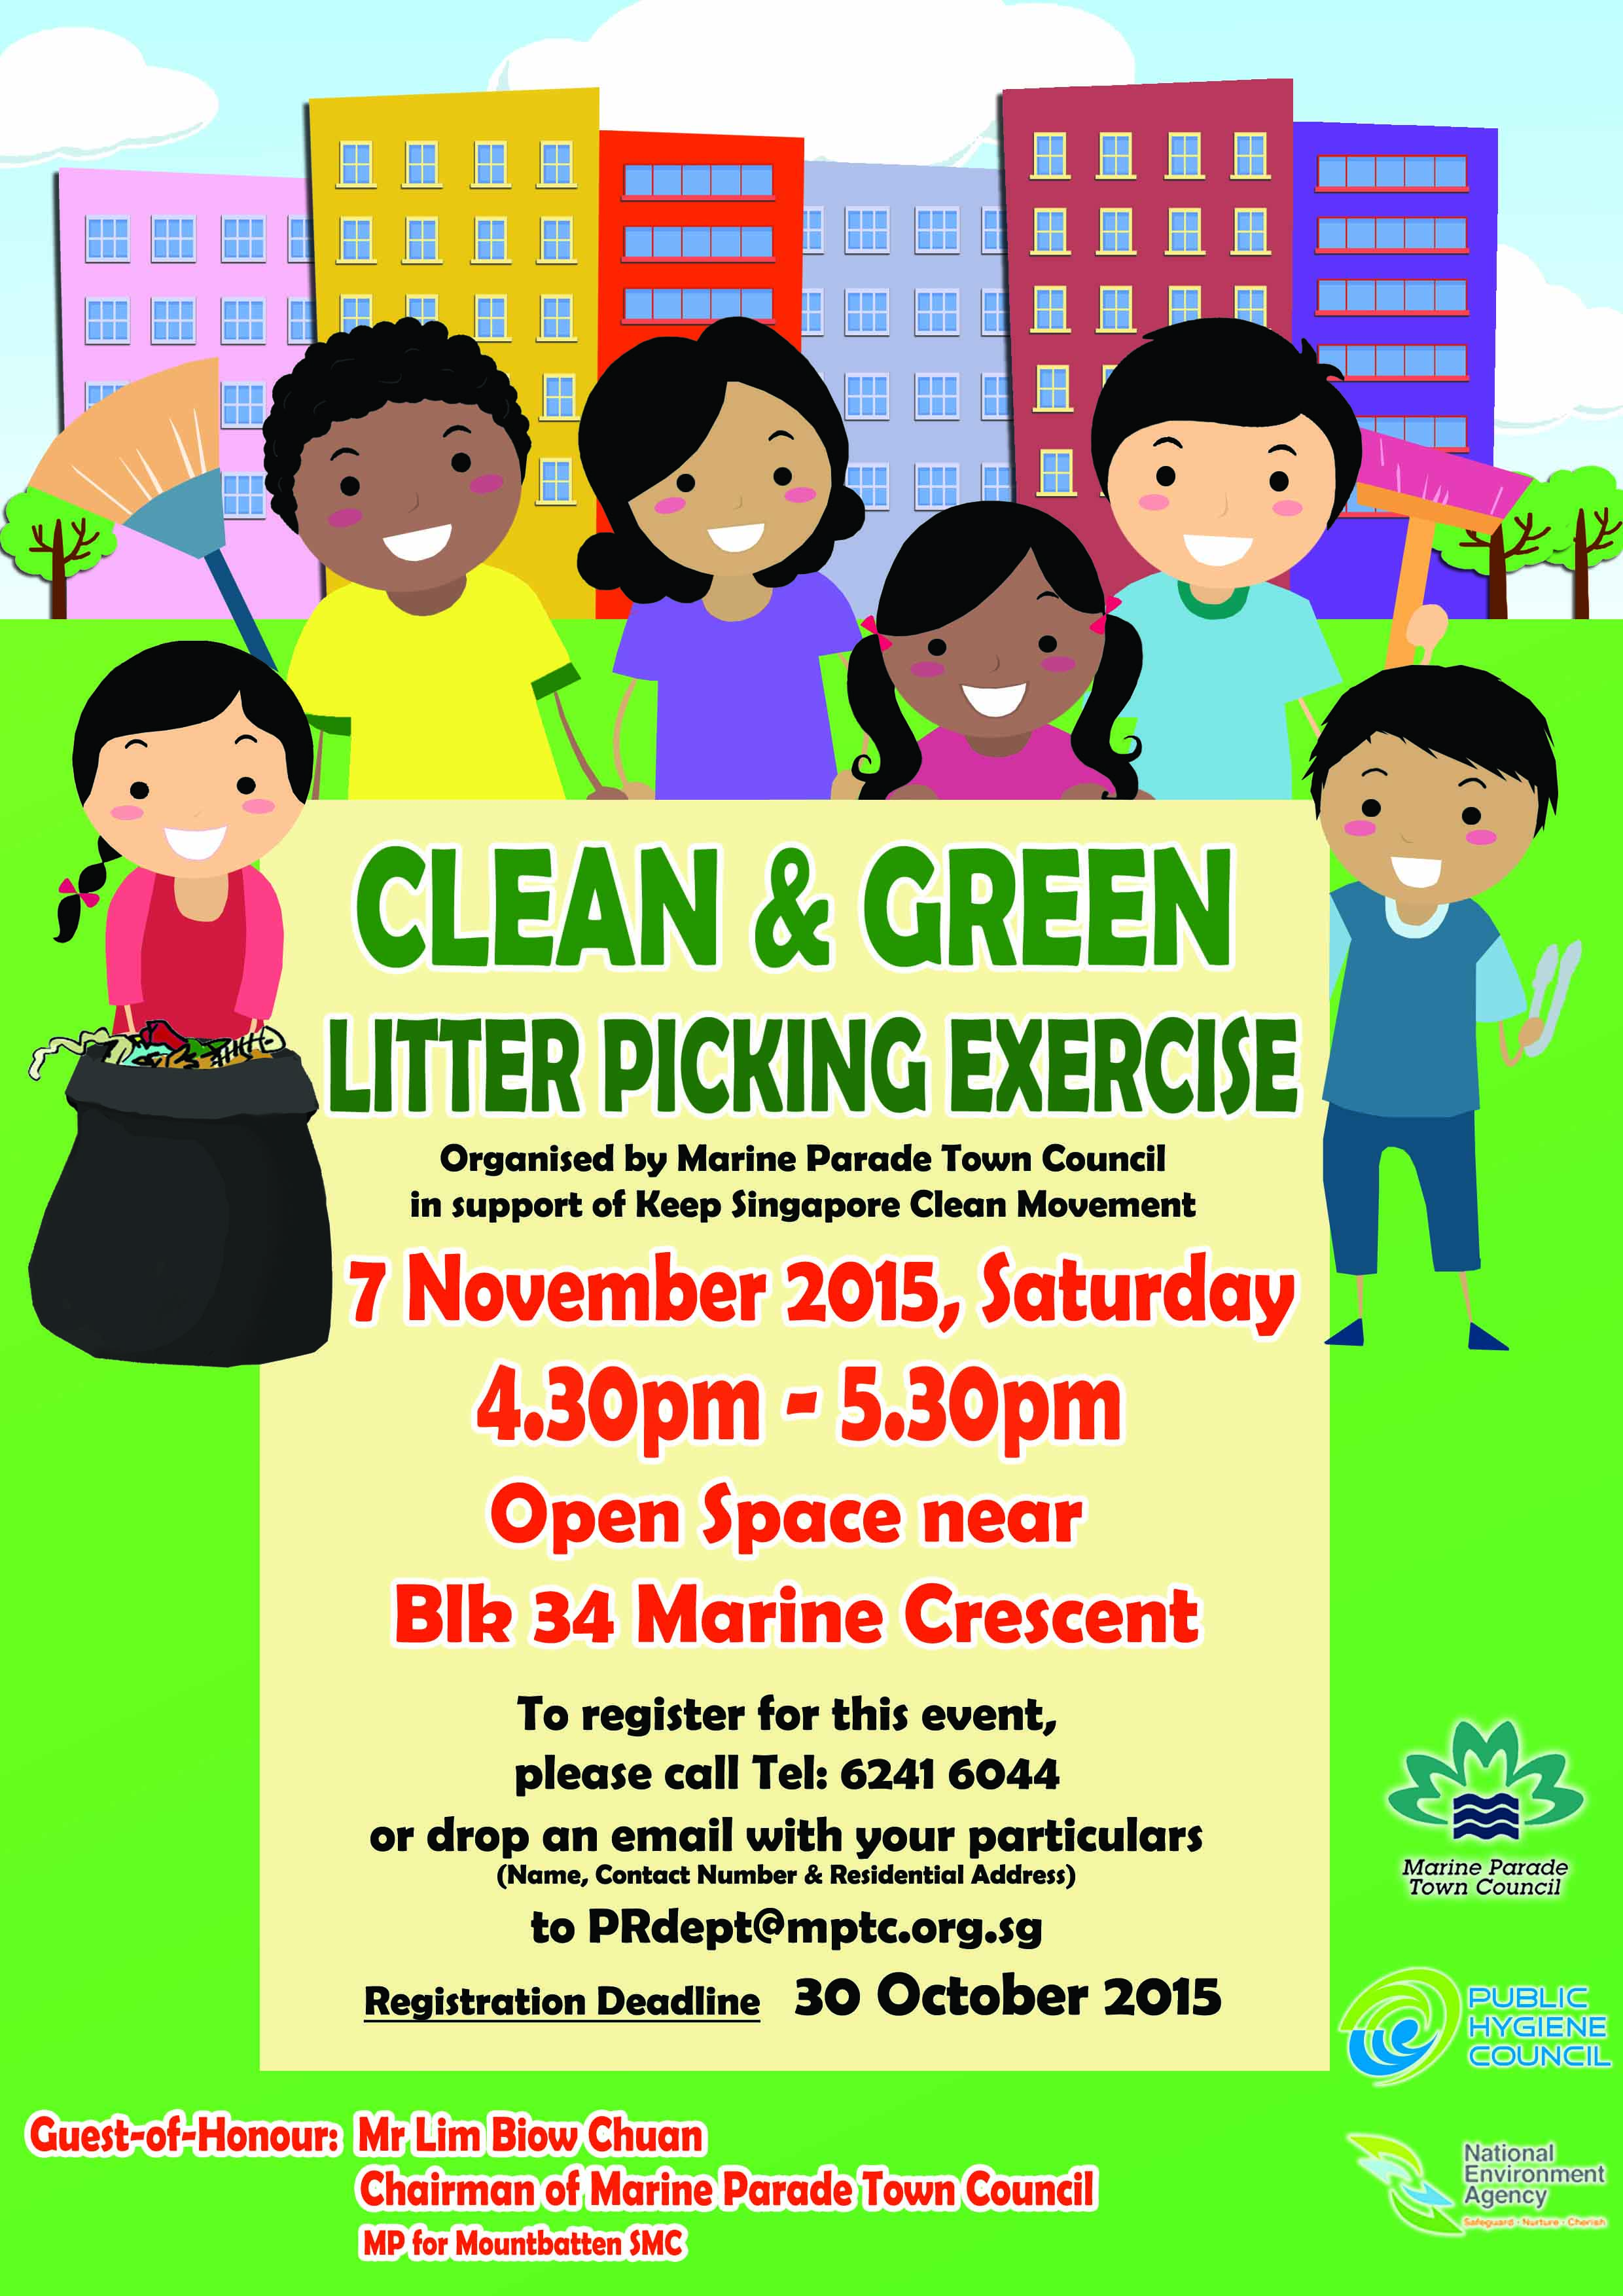 Clean & Green Litter Picking Exercise